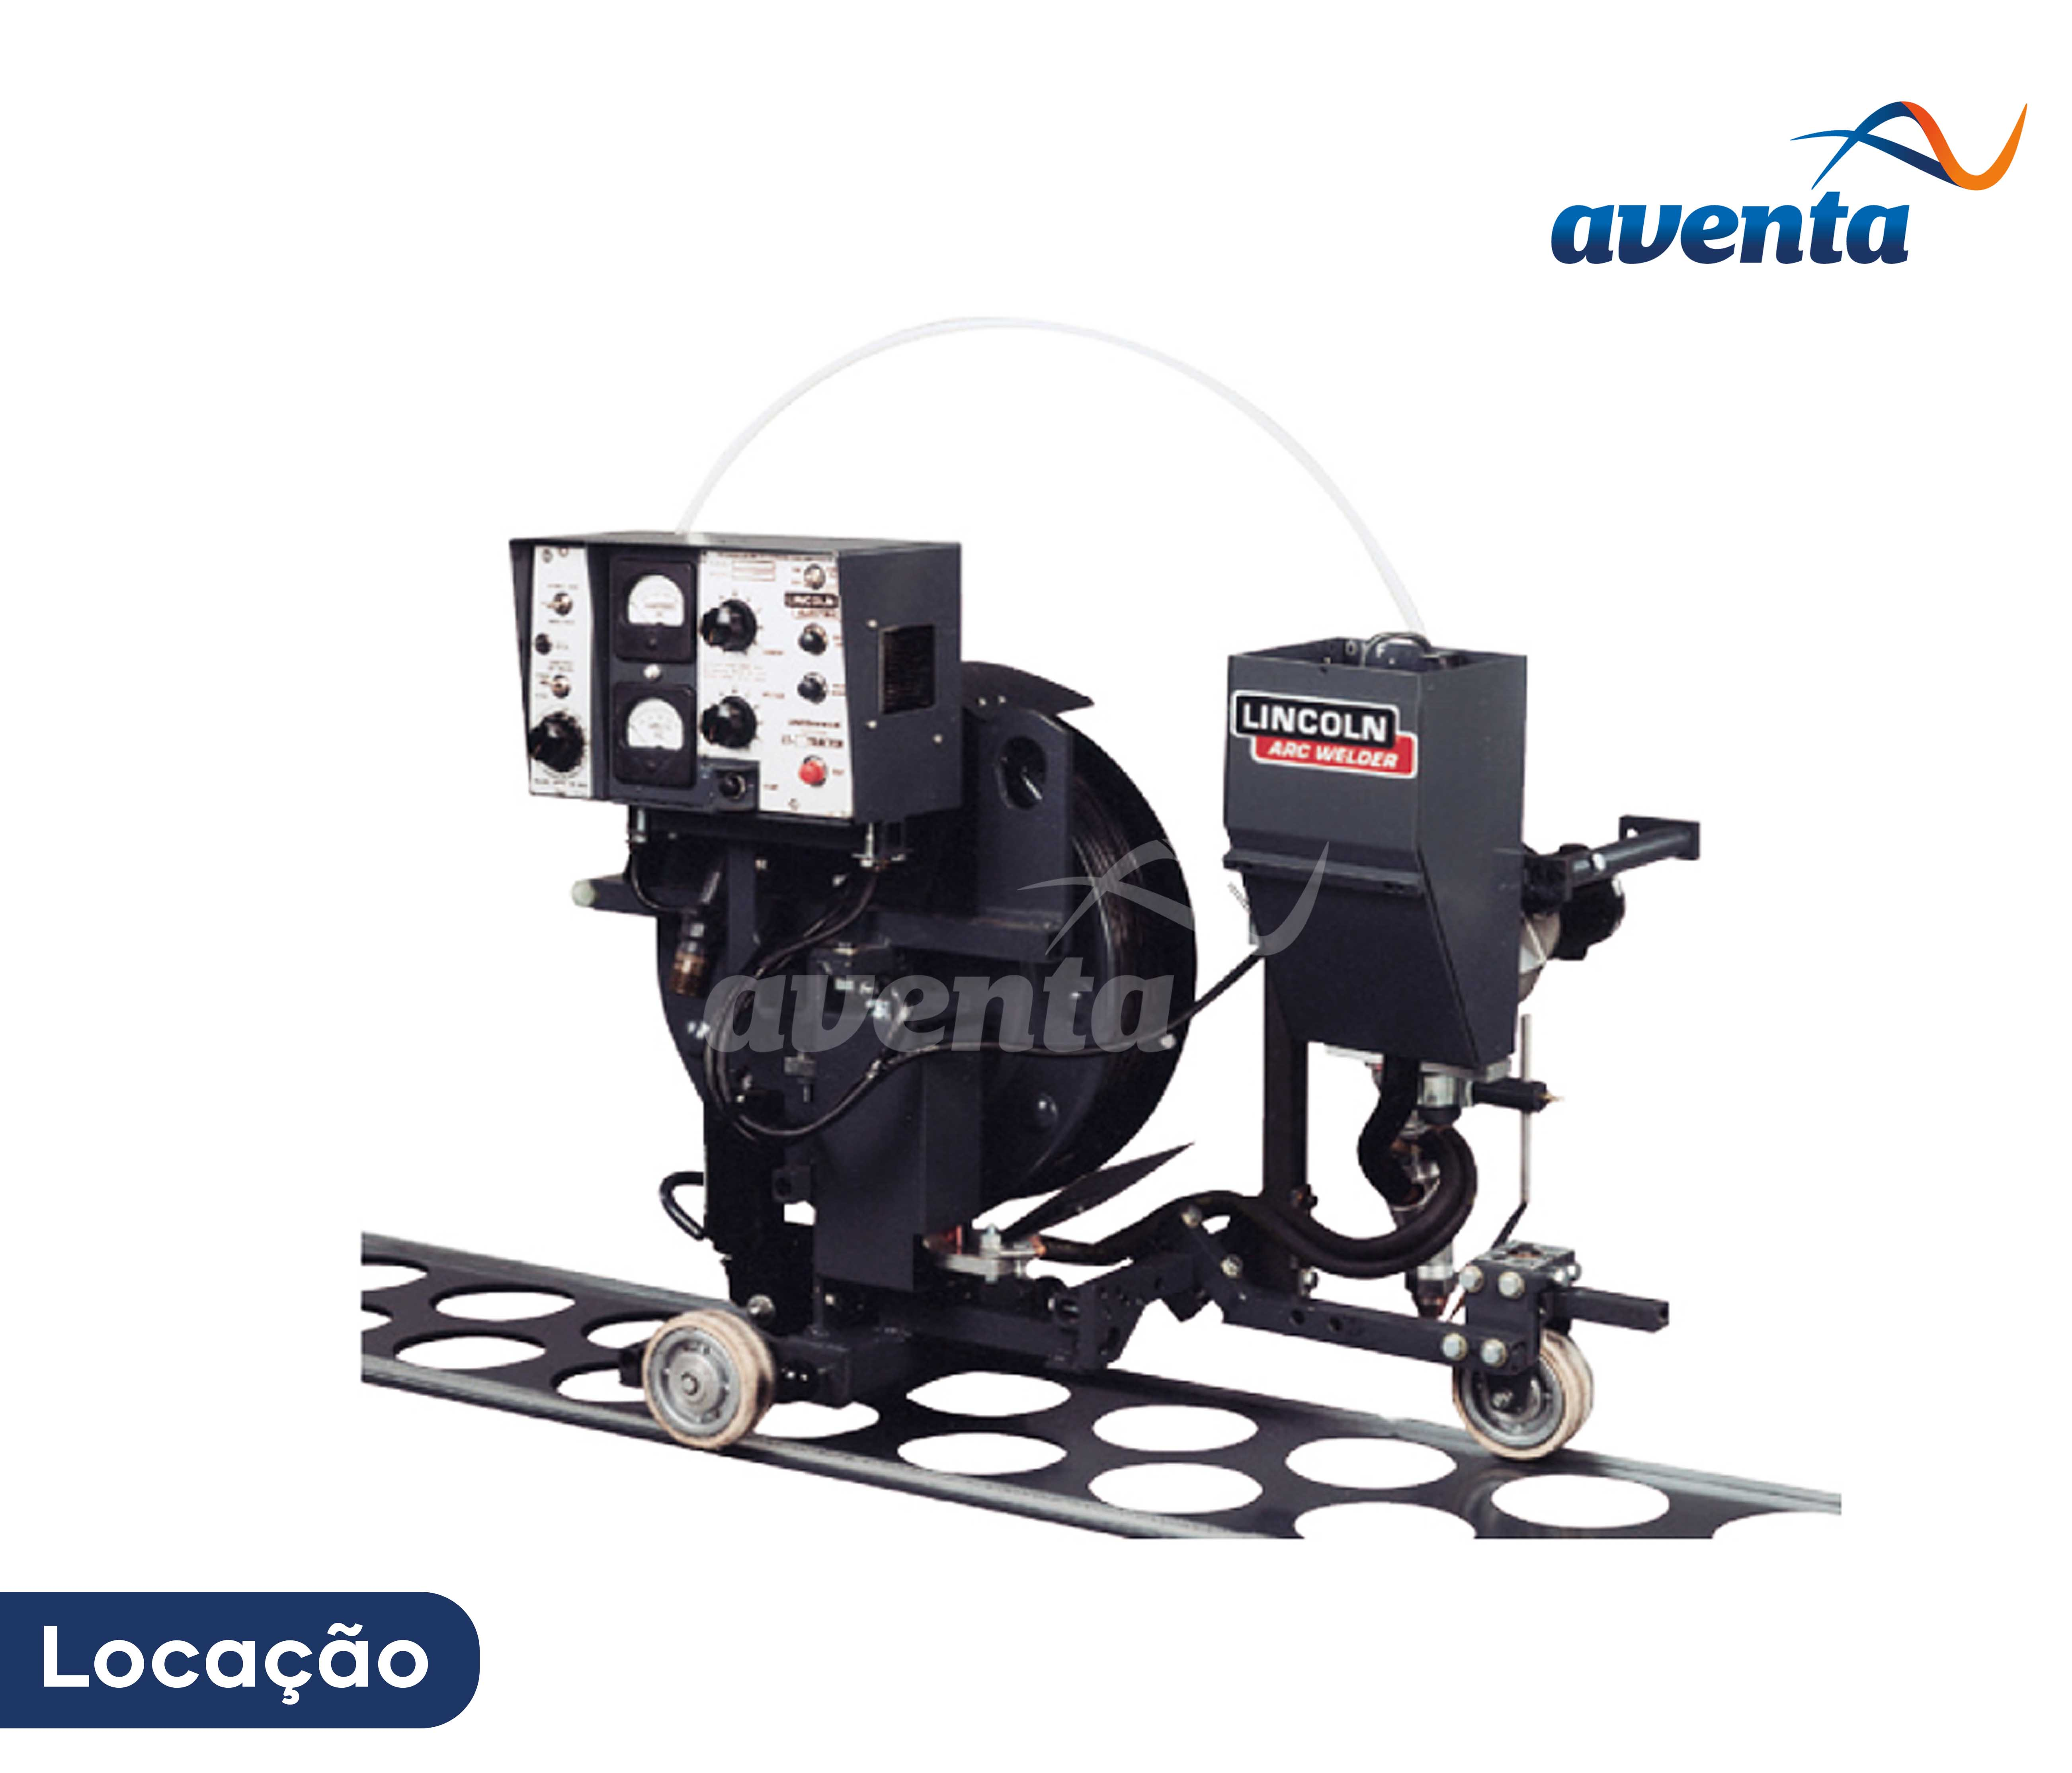 Trator LT 7 Arco Submerso